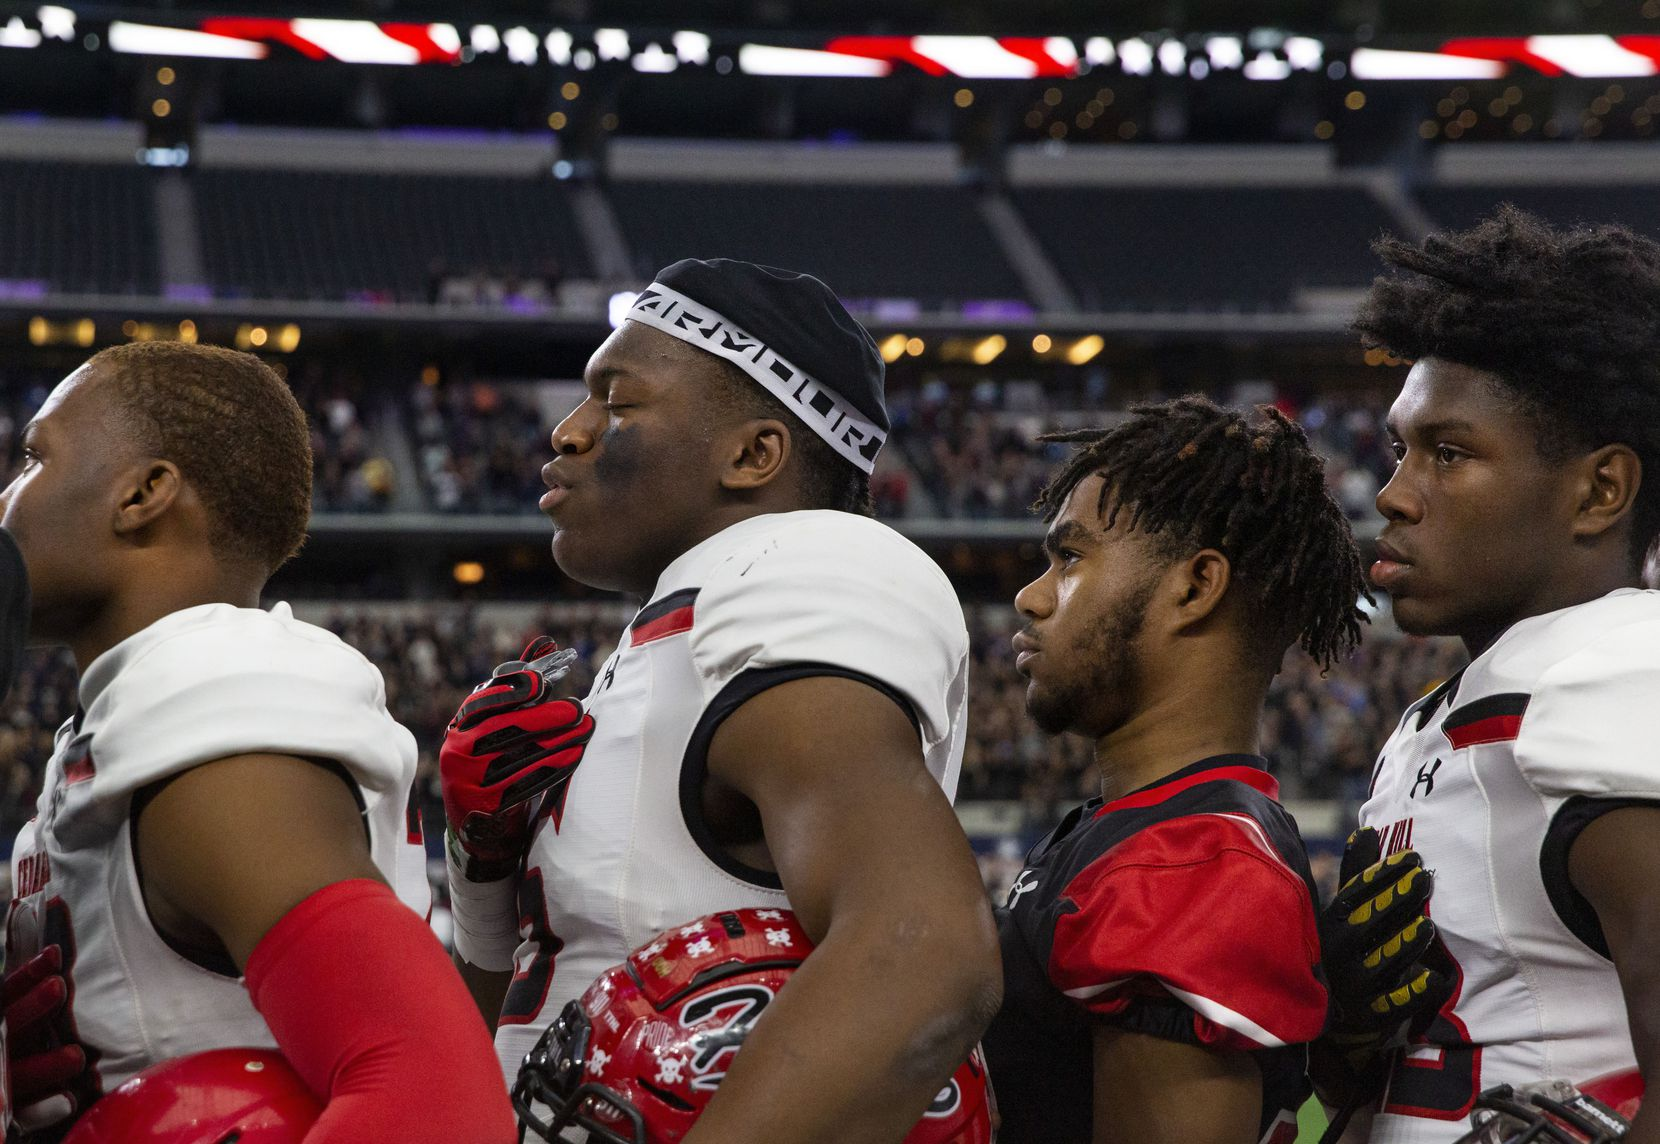 Cedar Hill players pray during the National Anthem prior to the game against Denton Guyer in the Class 6A Division II area-round high school football playoff game at the AT&T Stadium in Arlington, Texas, on Saturday, November 23, 2019. Denton Guyer beat Cedar Hill 50-41 in a major comeback after trailing by 27 points at halftime.